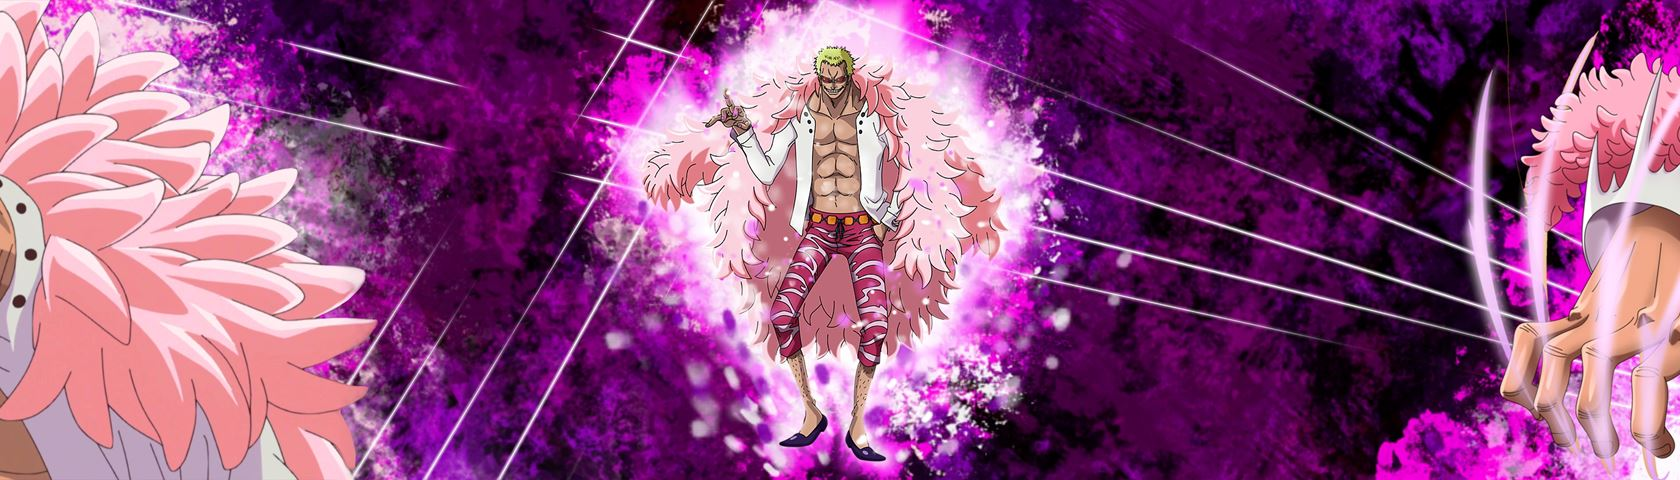 One Piece Doflamingo triple monitor wallpaper HD